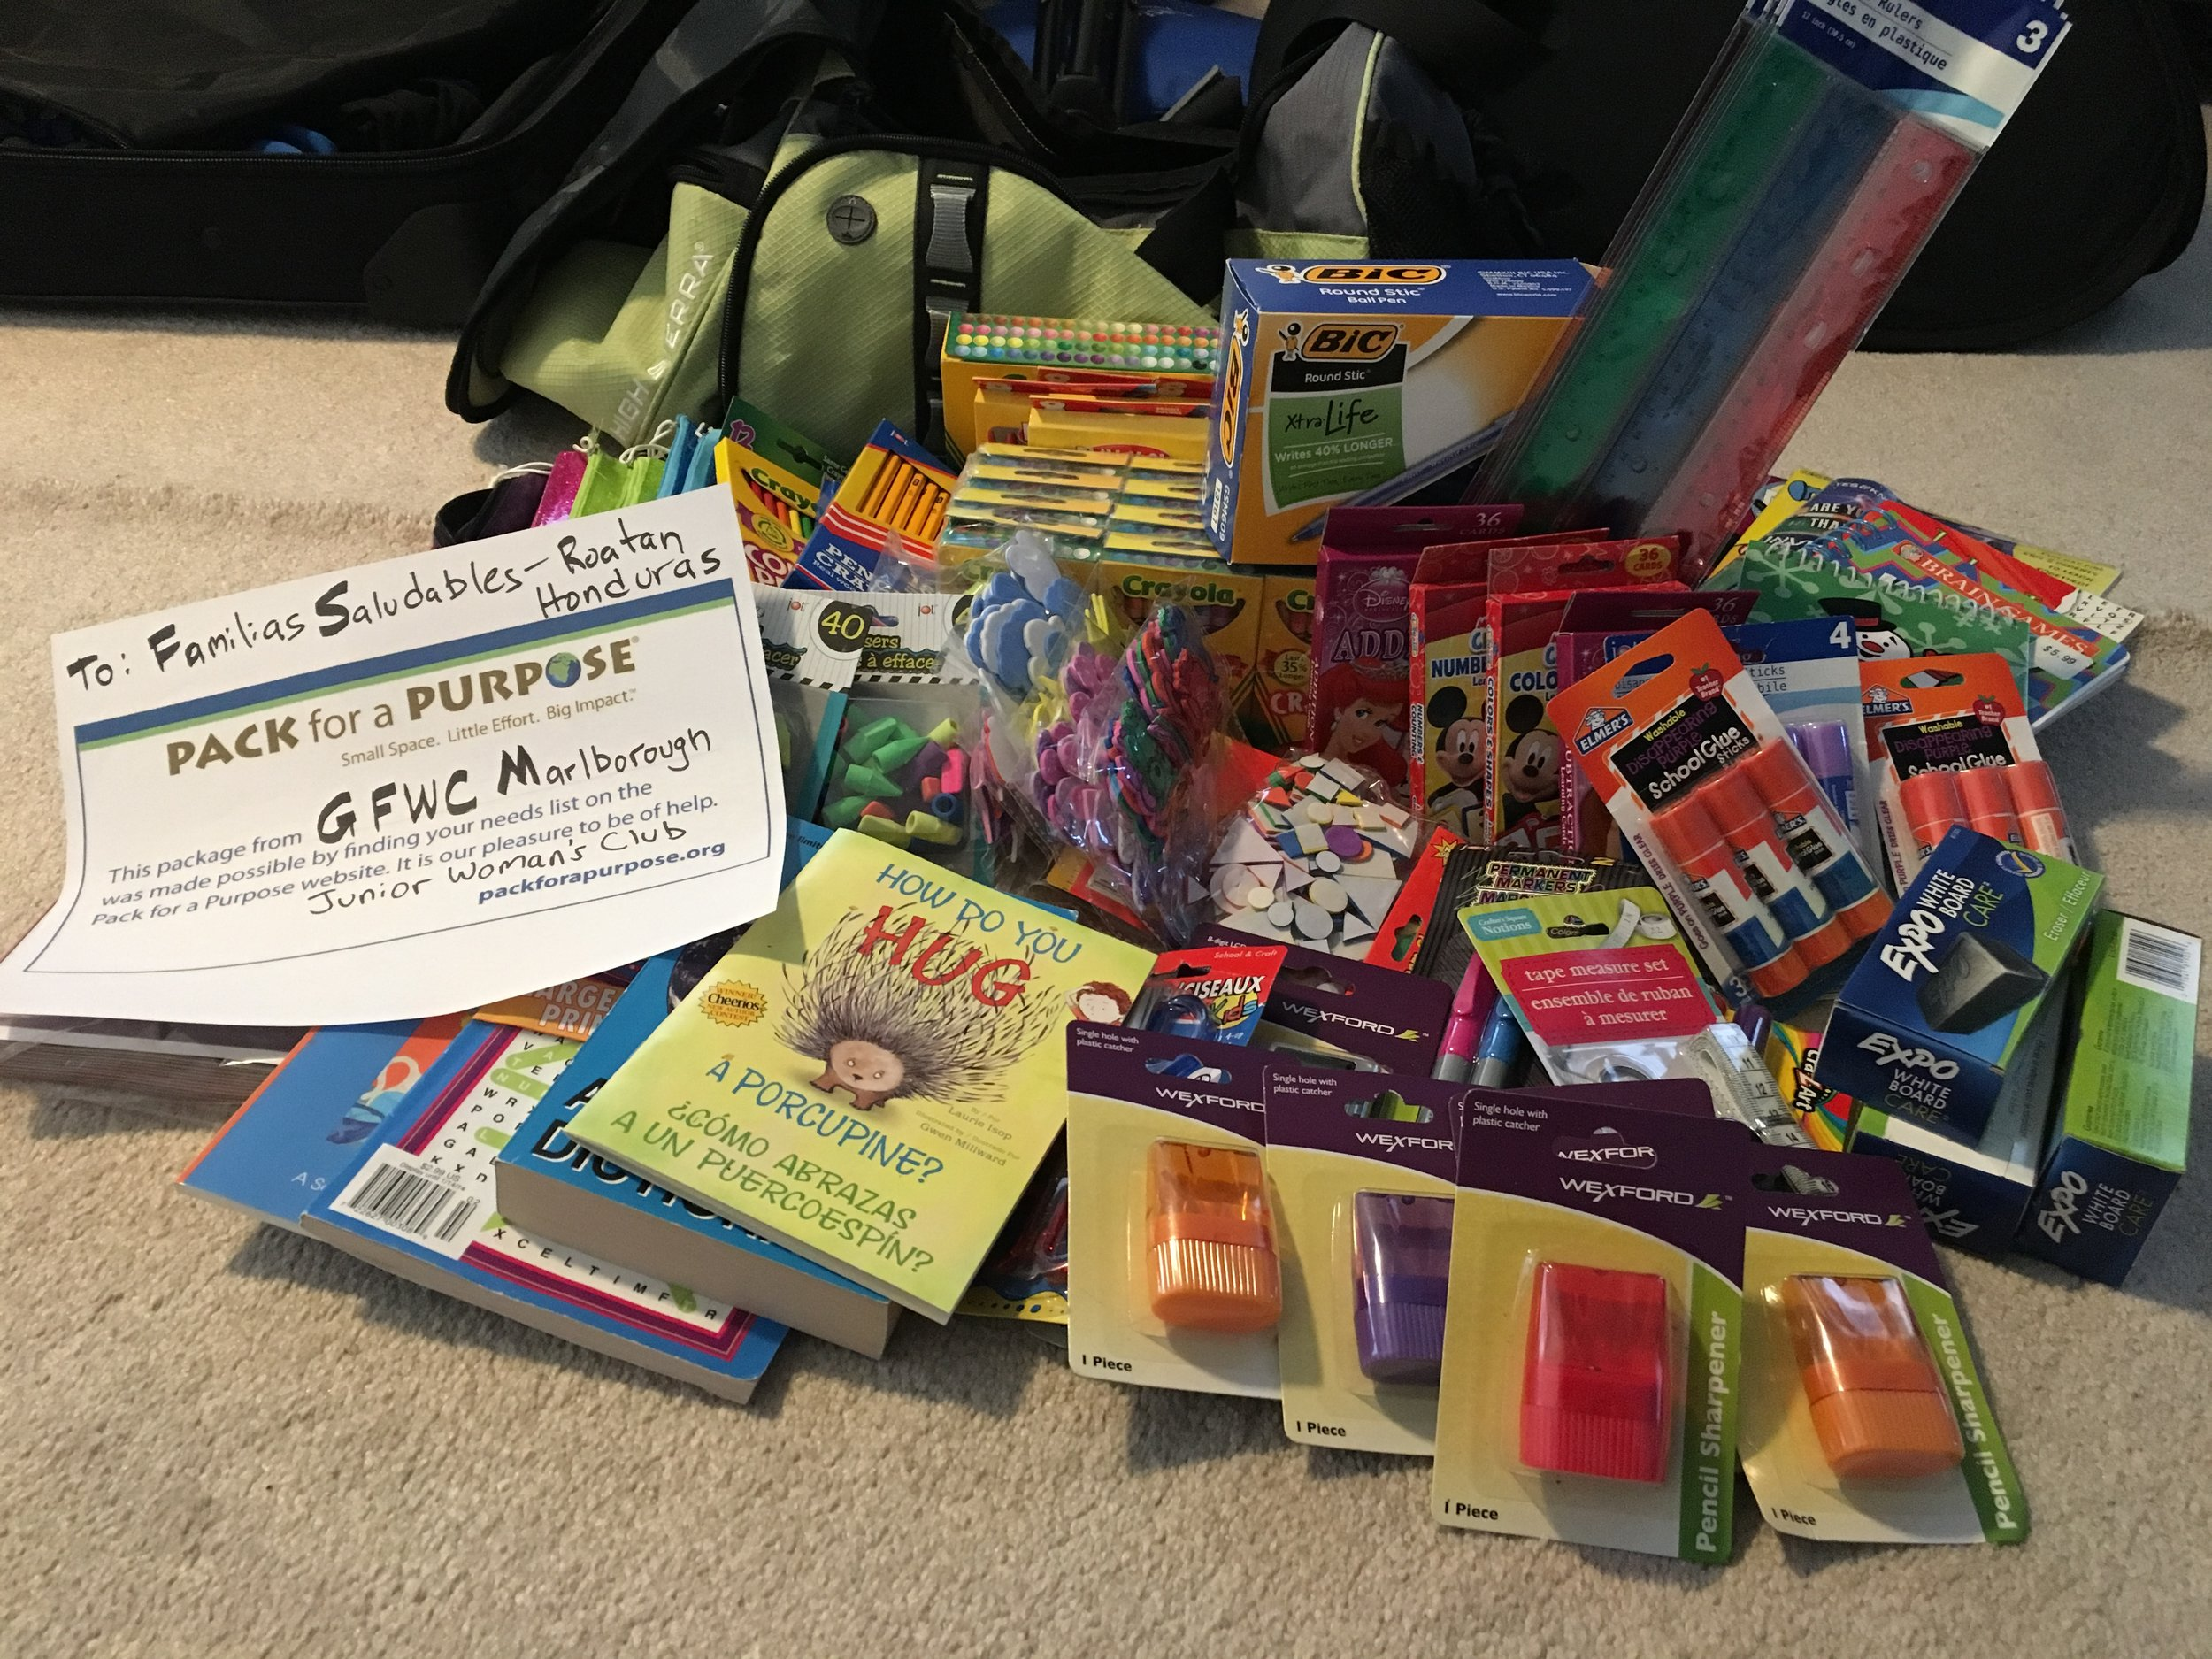 Supplies collectd by the MJWC for Familias Saludables